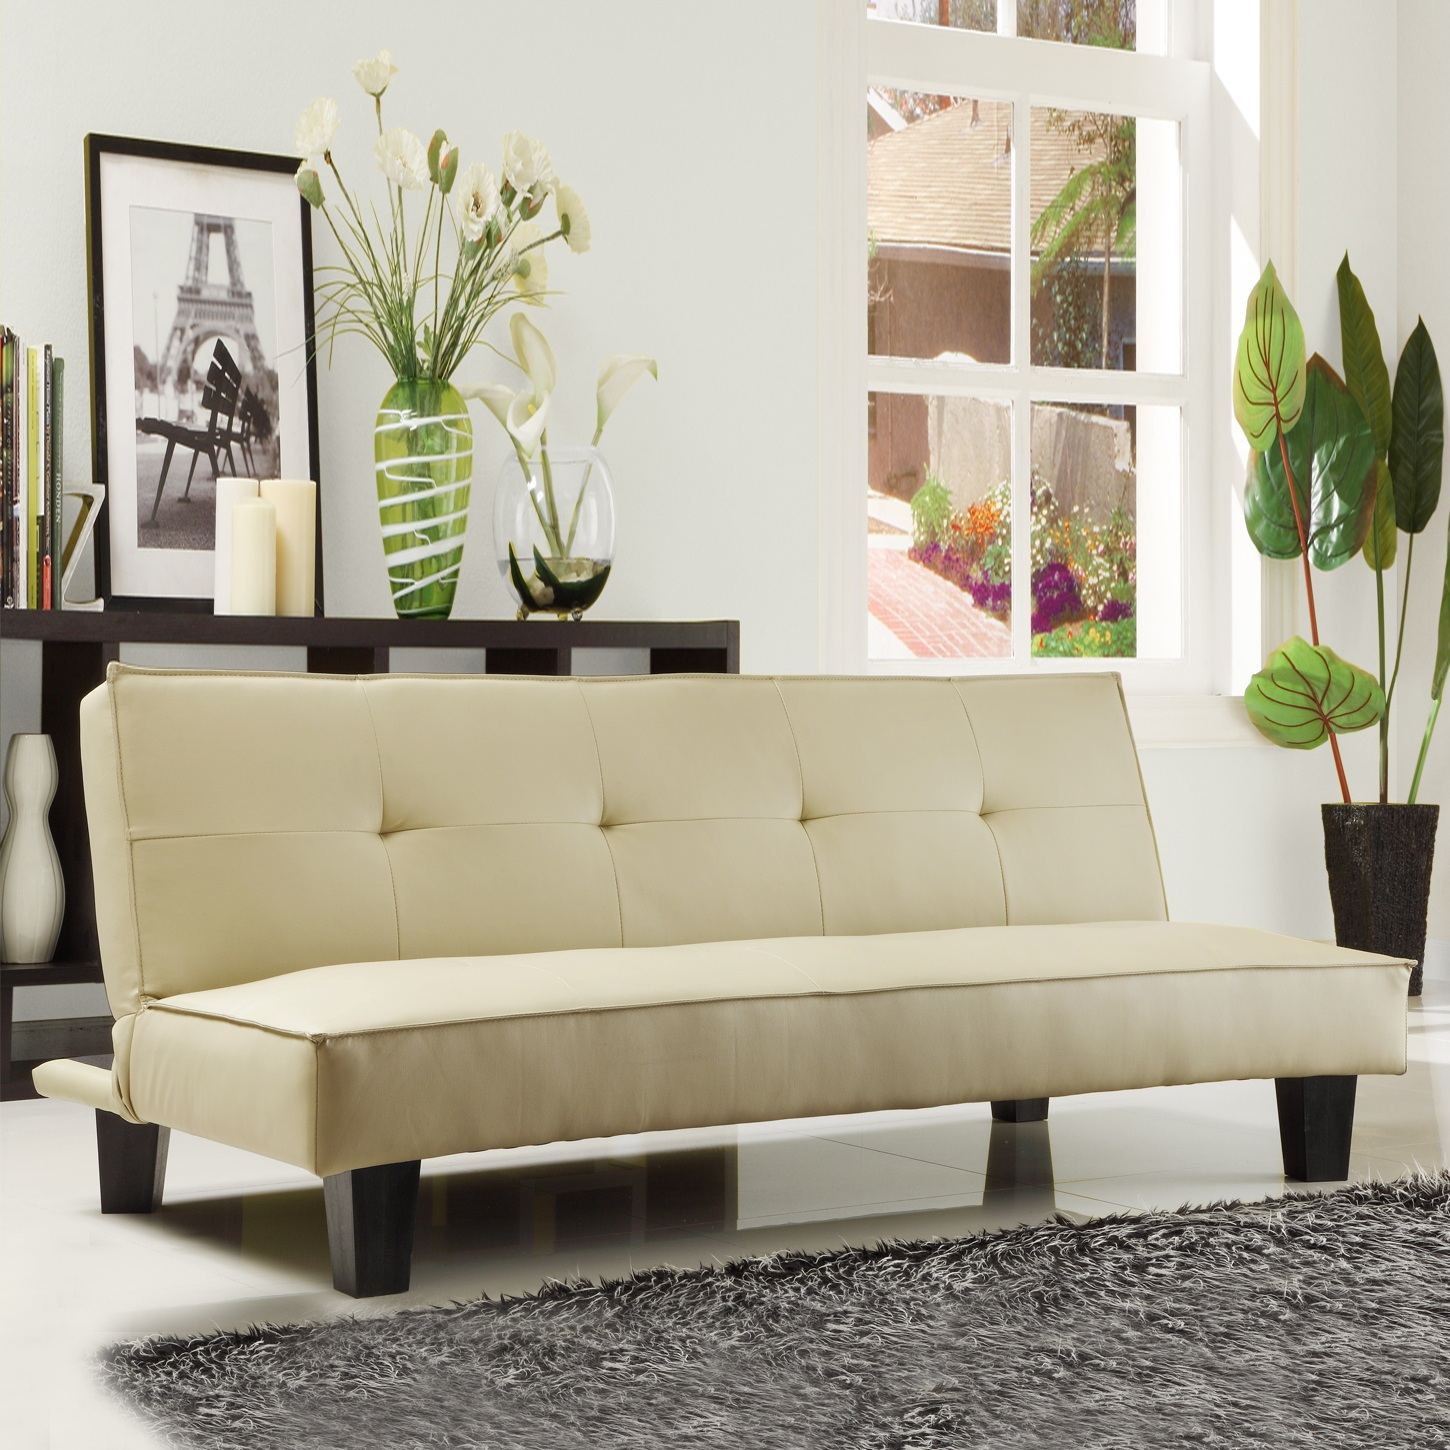 Image of: Best Mini Futon